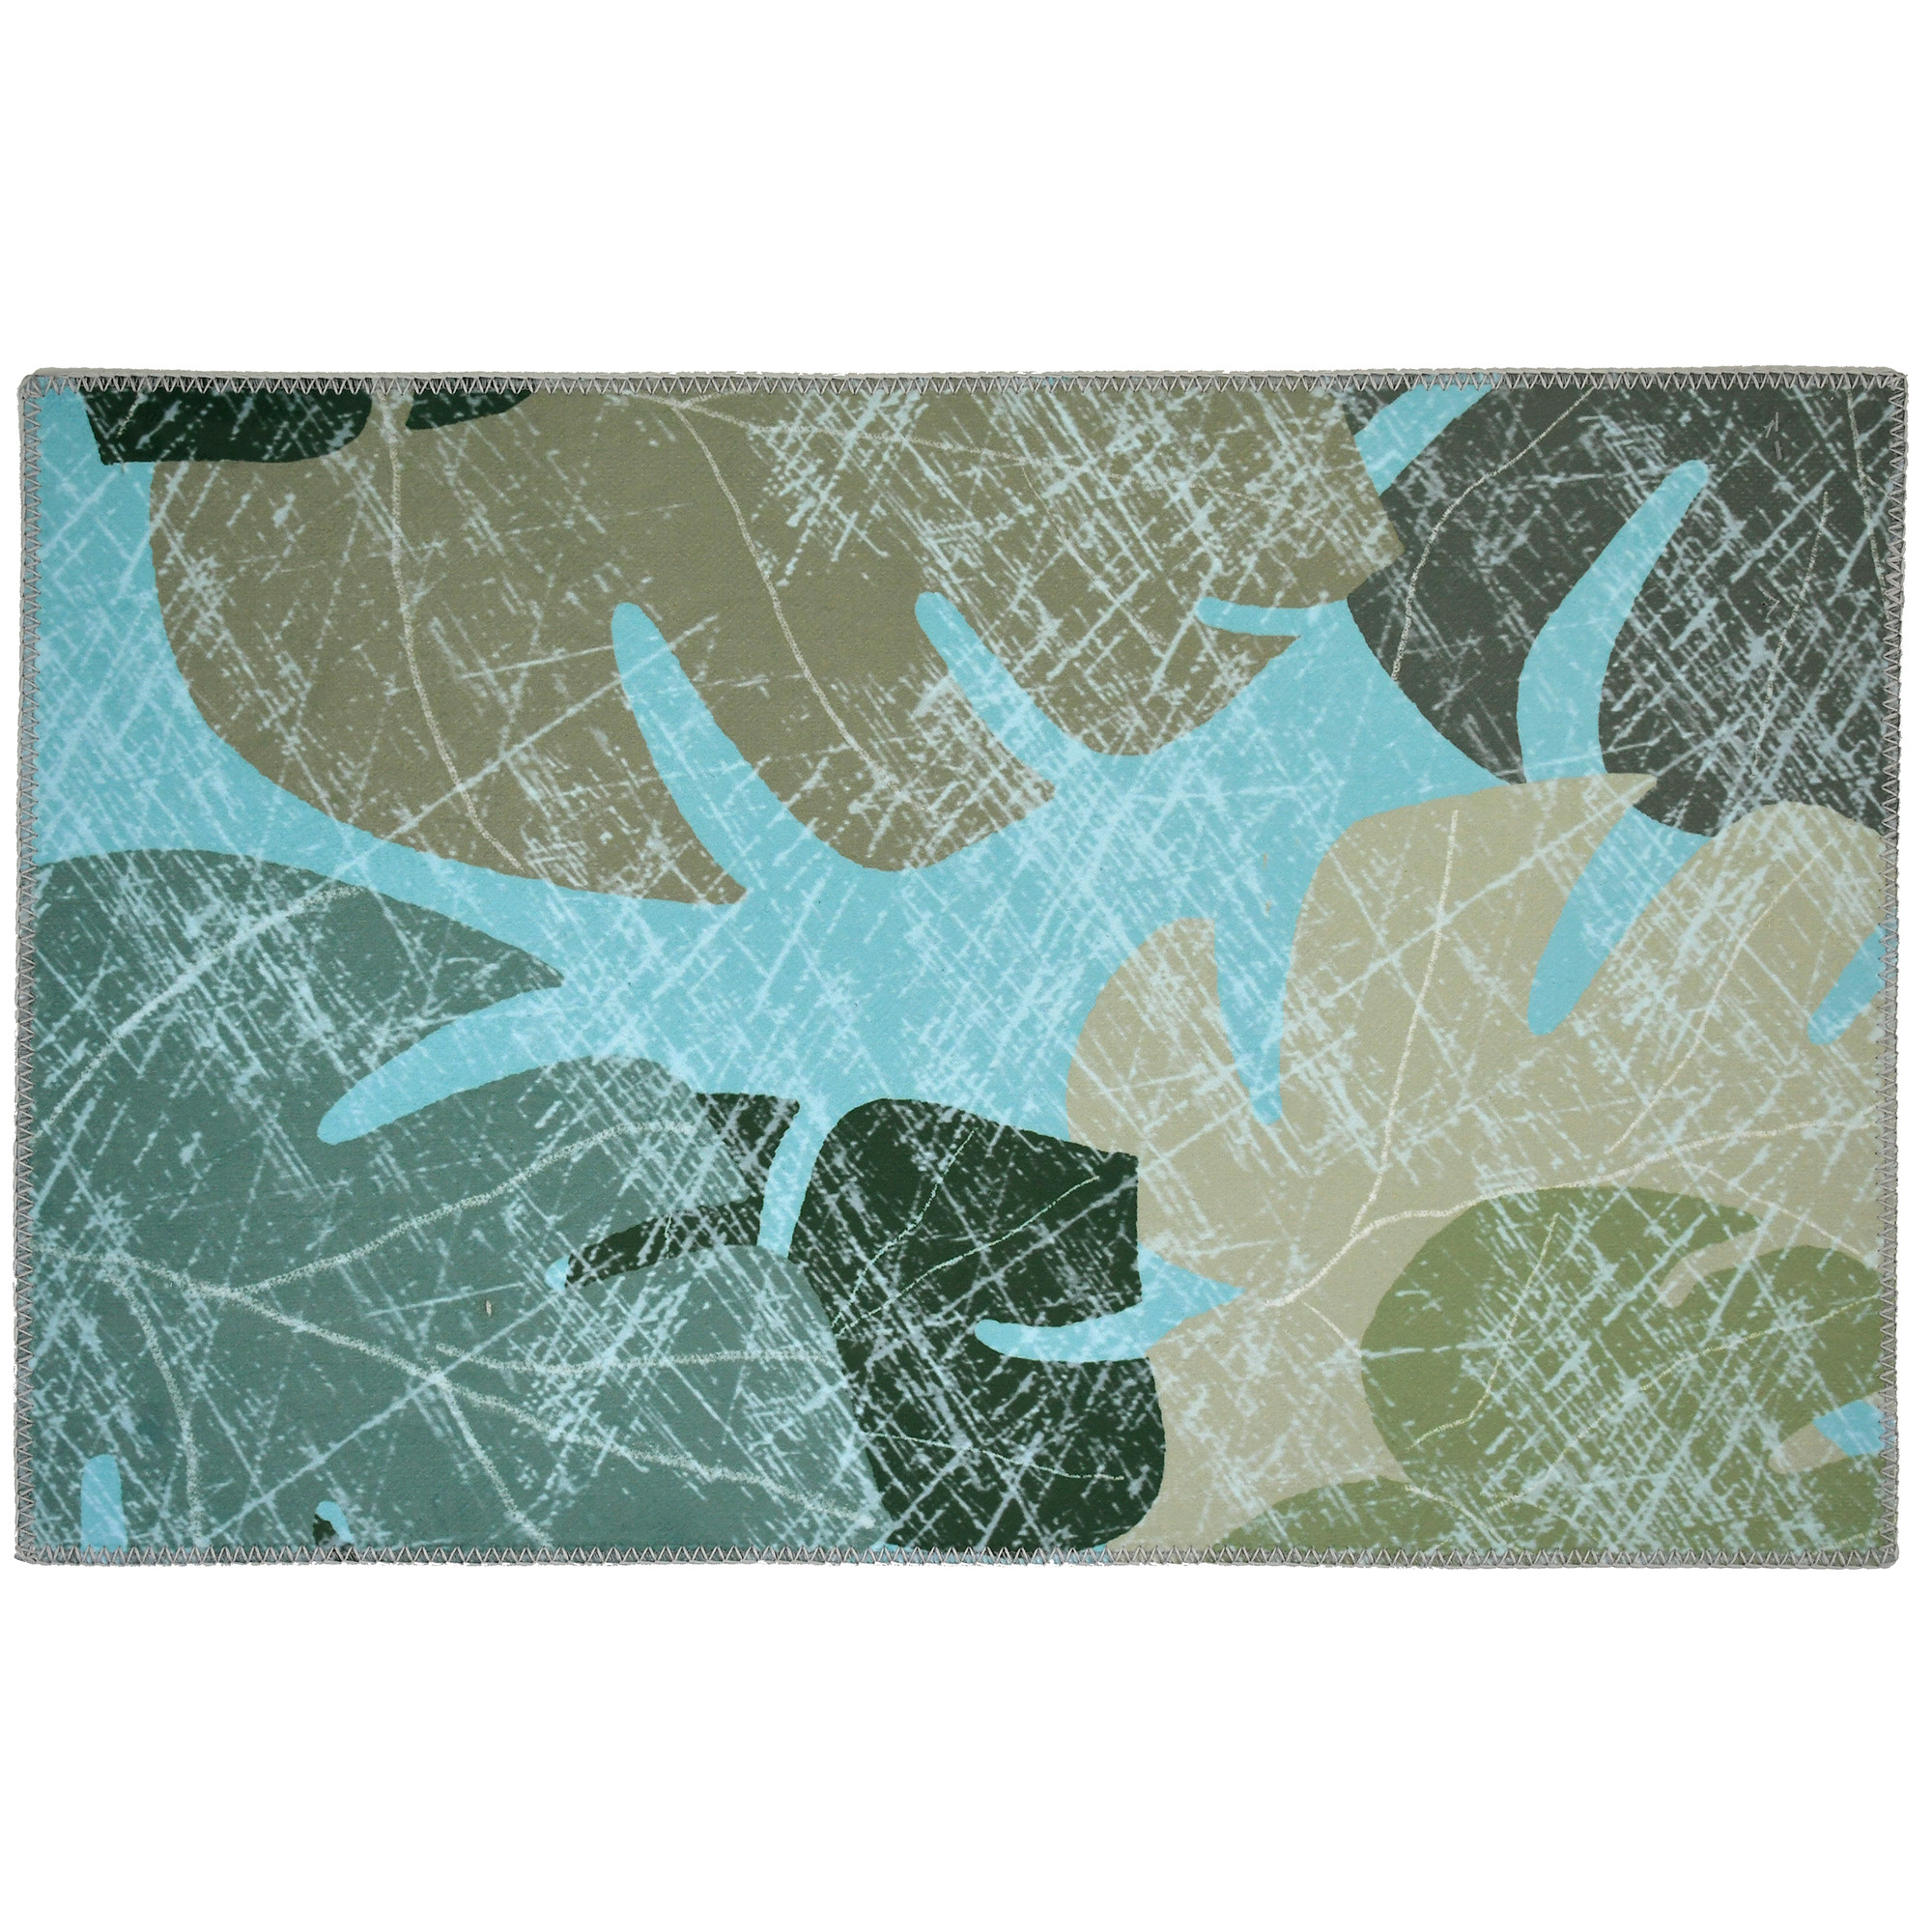 "Faded Tropical Leaves 20"" x 30"" PR-JRY001B"